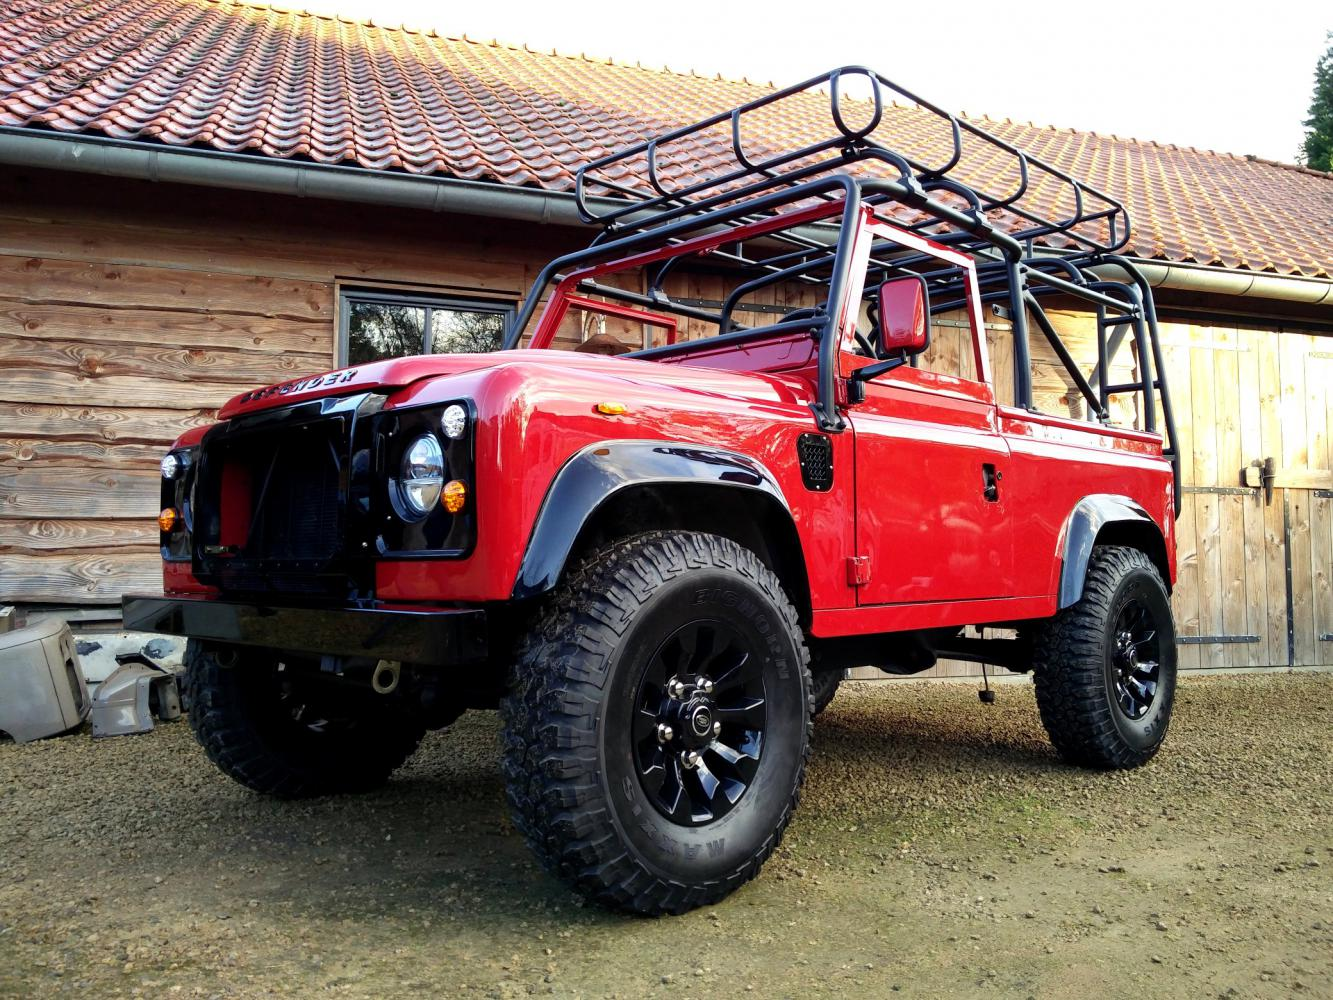 Click image for larger version  Name:1992 LR LHD Defender 90 Red 200 Tdi A day 10 left front low.jpg Views:171 Size:280.8 KB ID:322361